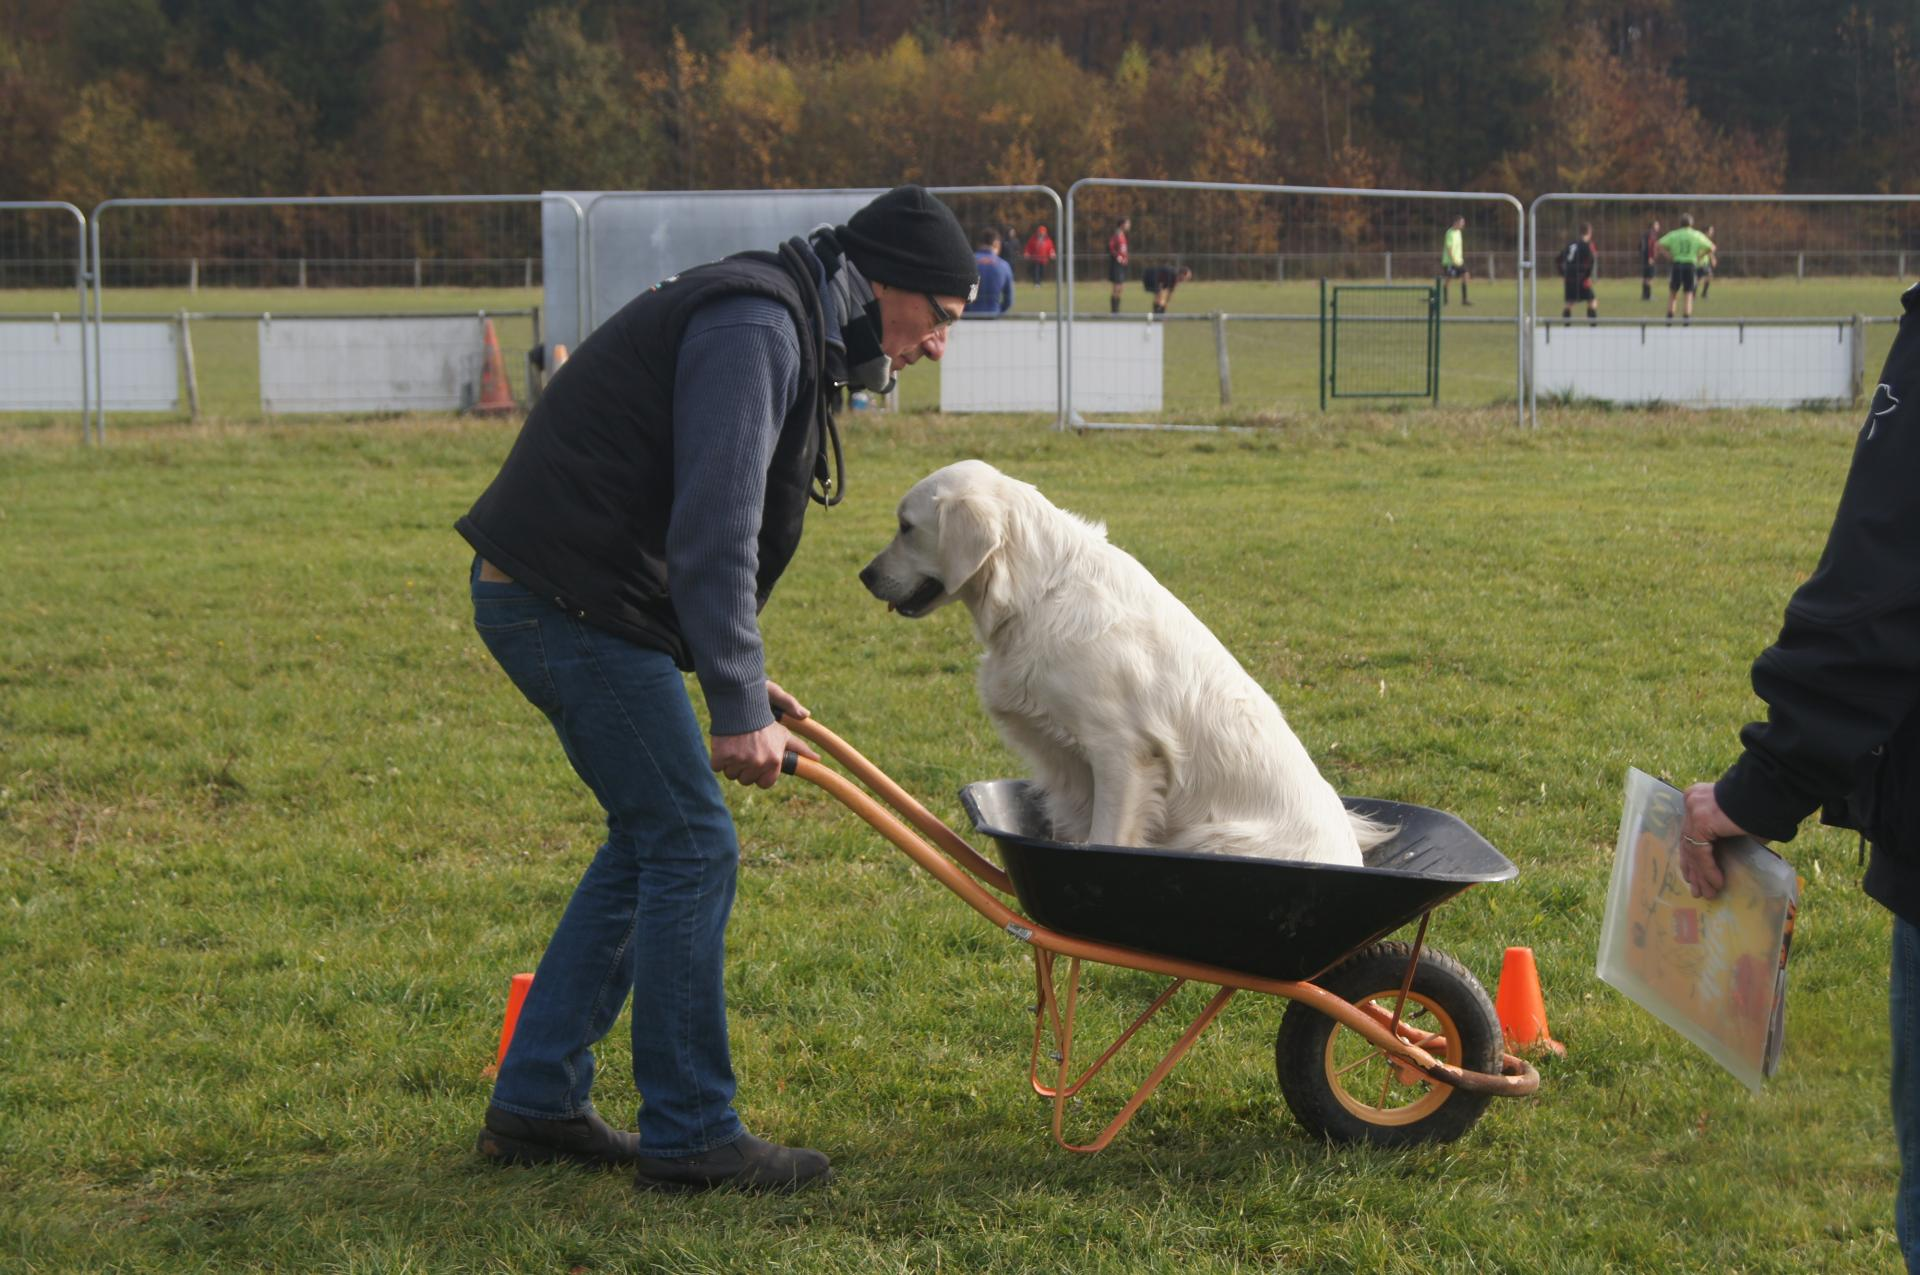 SPORTS CANINS DE BRECHAUMONT